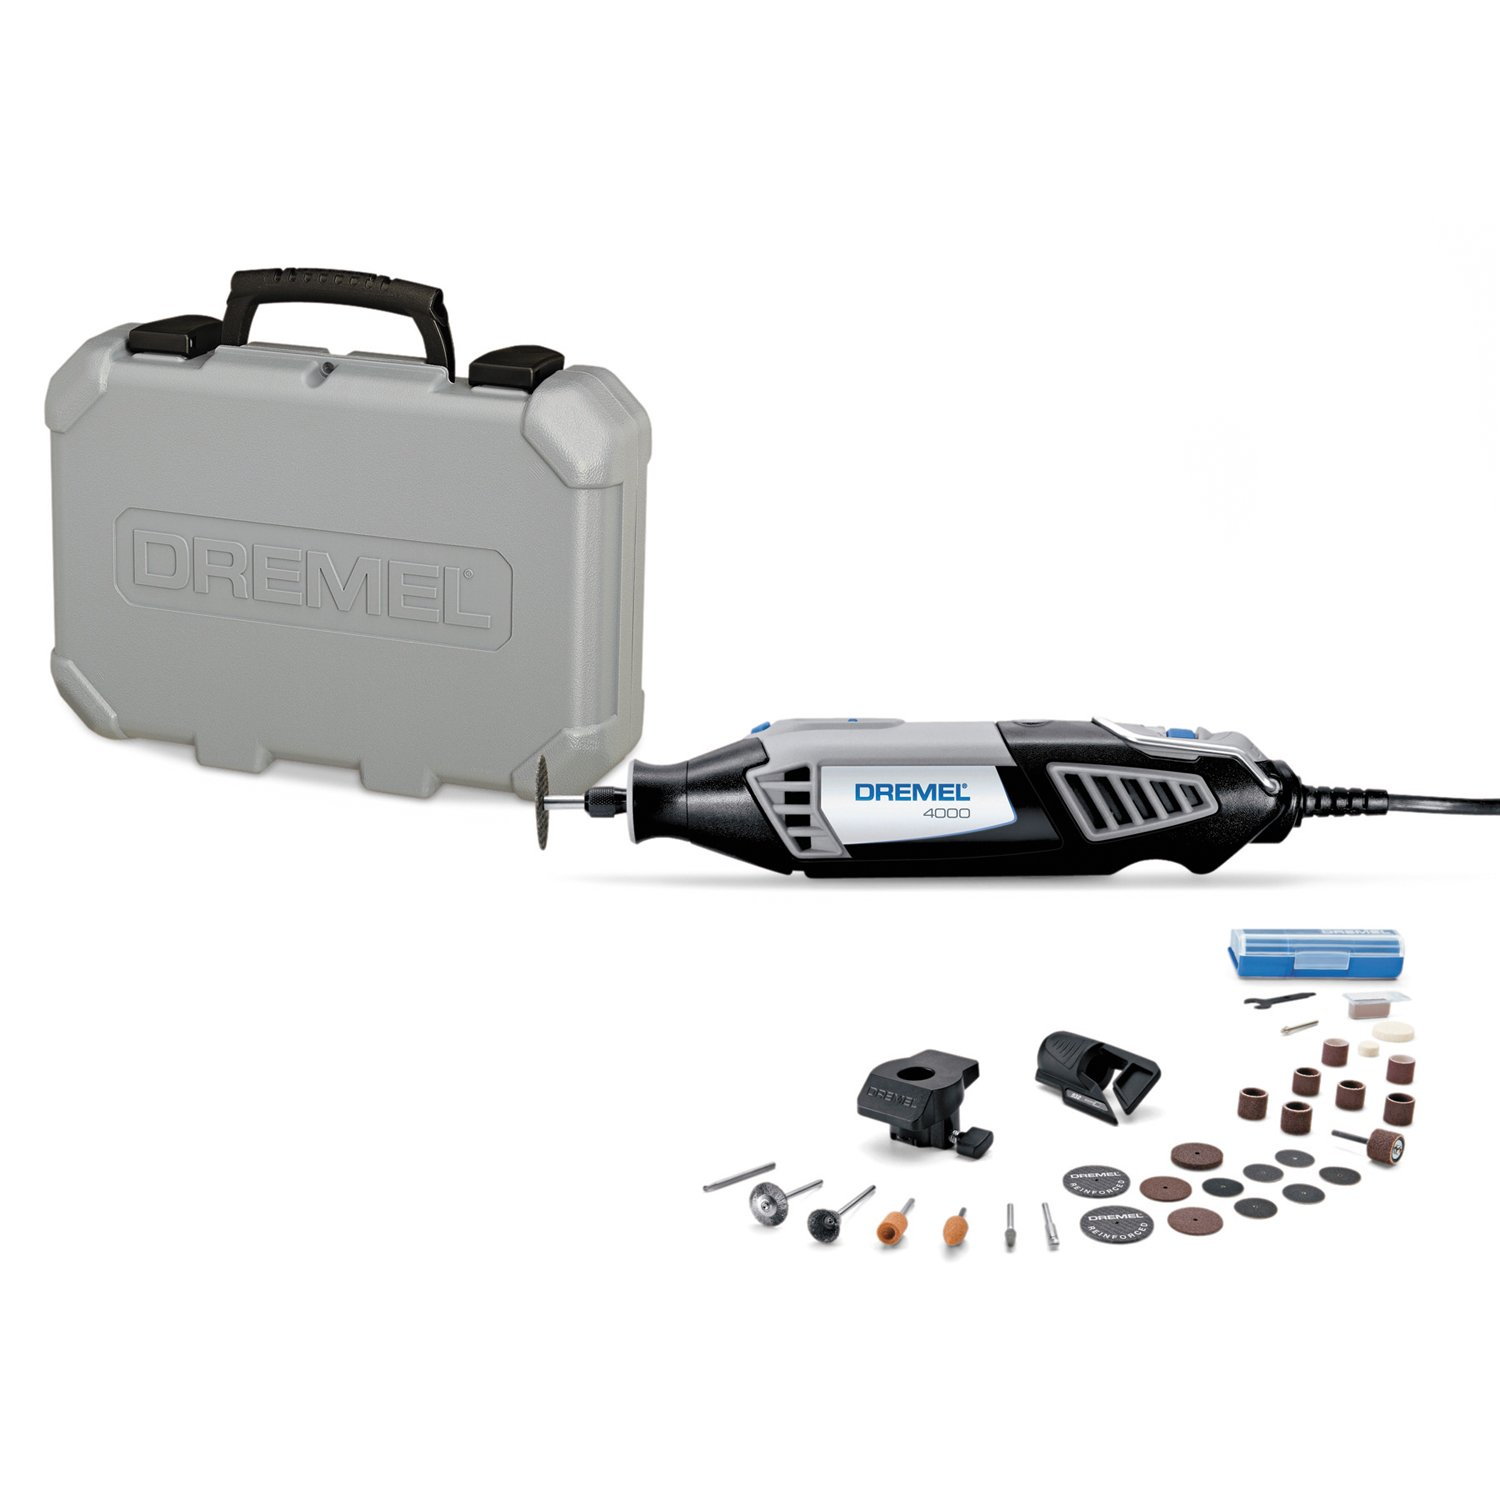 Dremel 4000-2/30 4000 Series Rt Storage Case